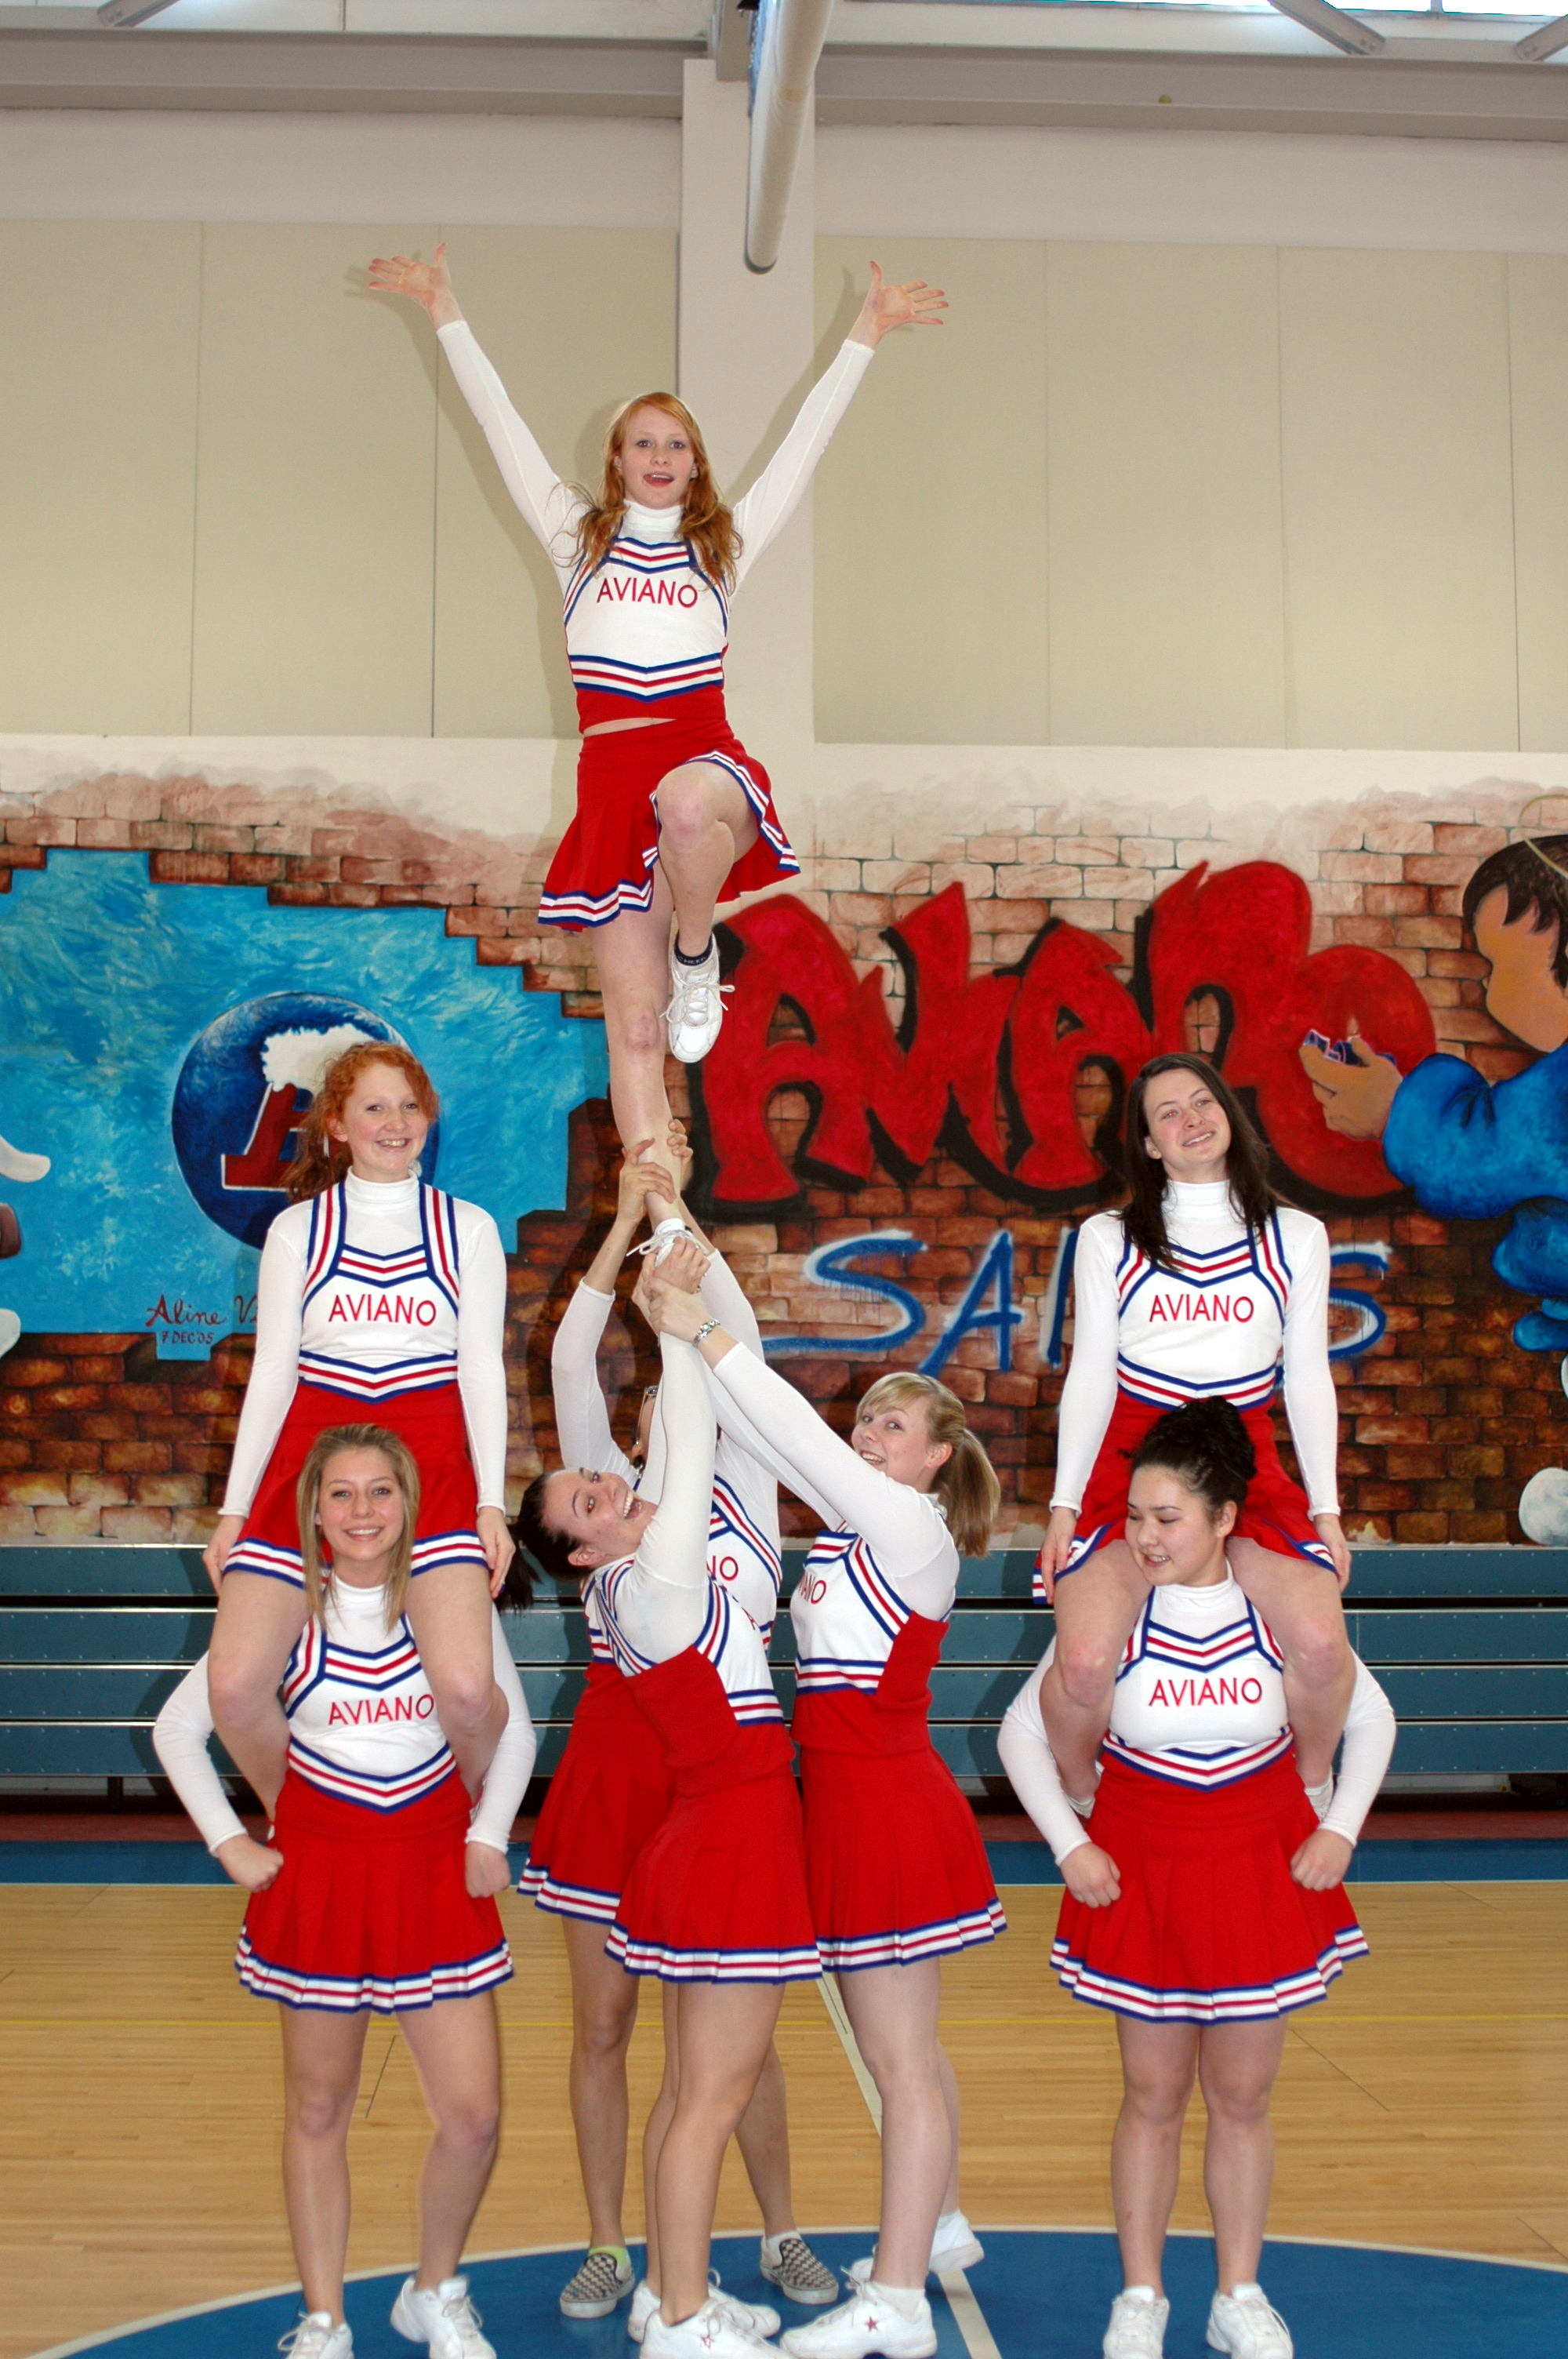 Description Aviano cheerleaders.jpg